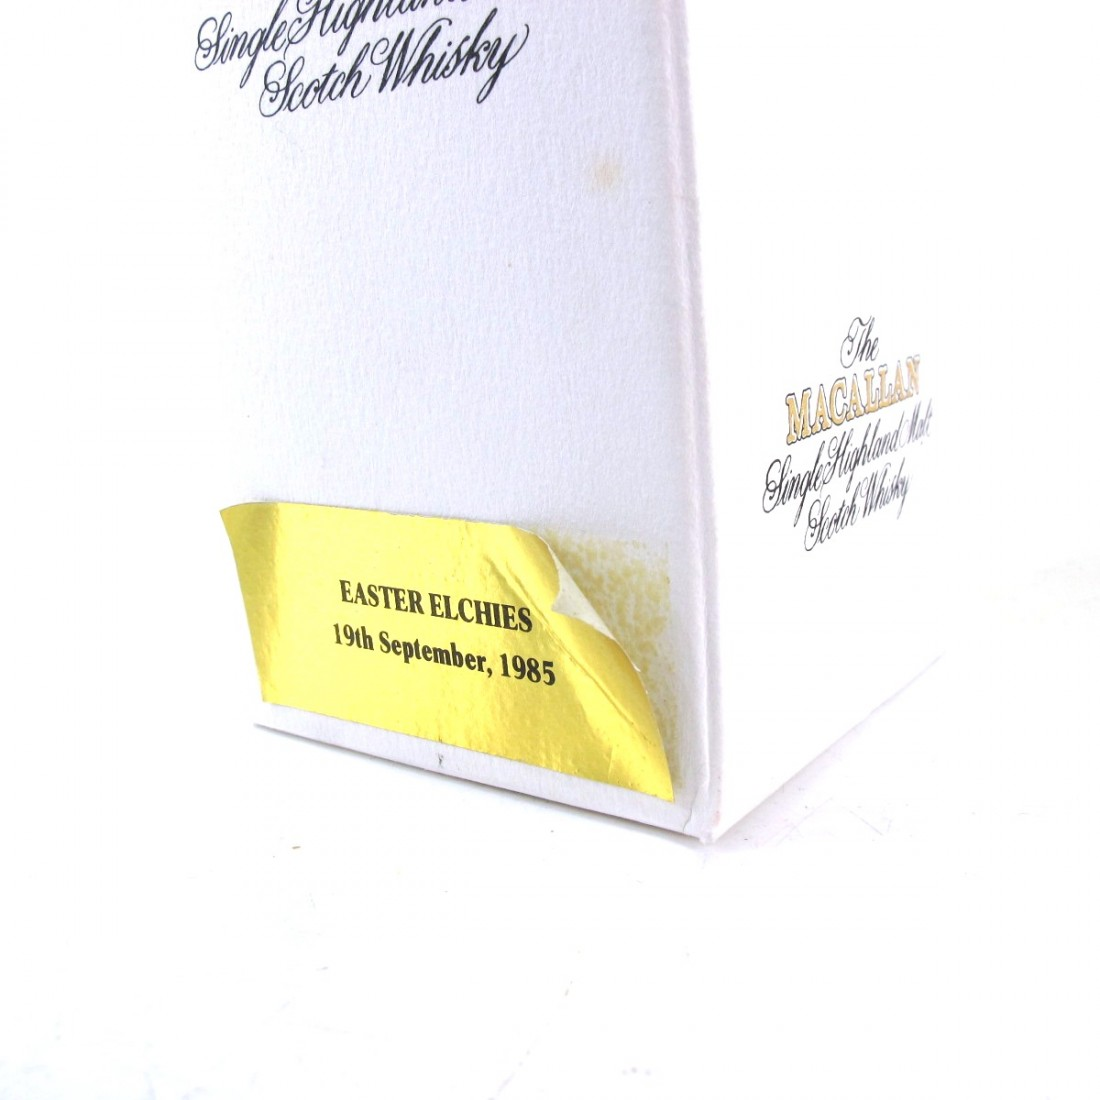 Macallan Special Reserve 1985 Easter Elchies